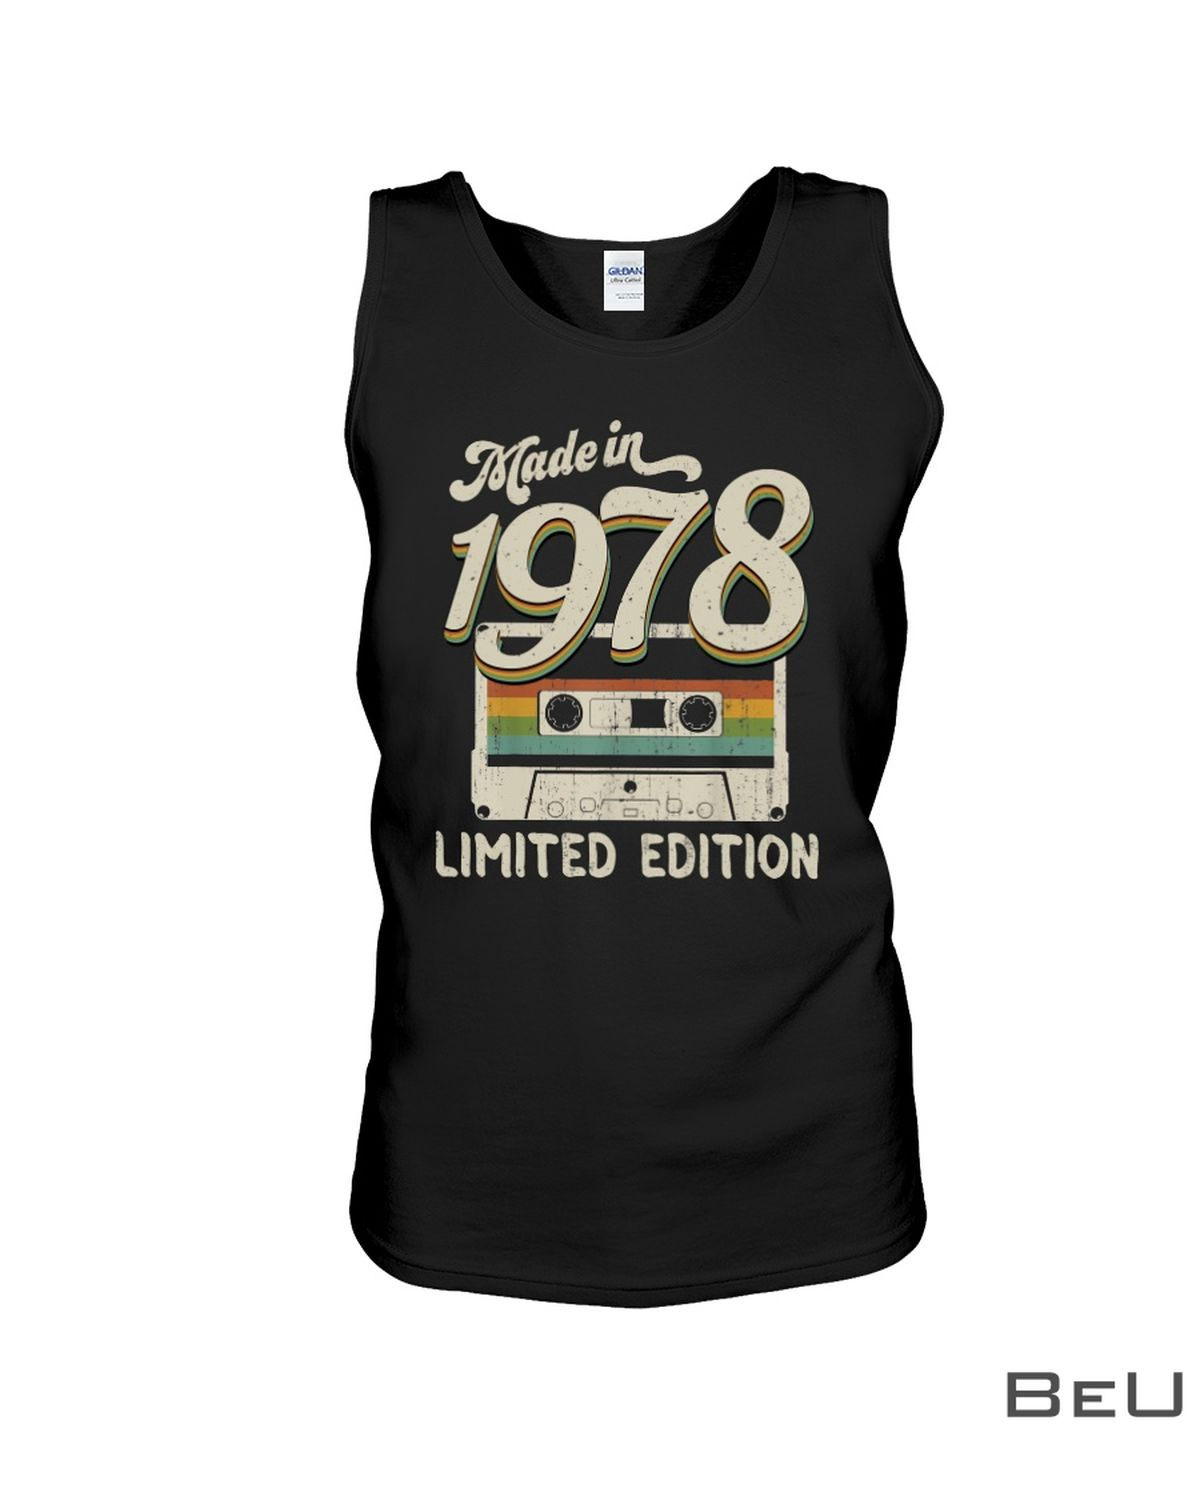 Made In 1978 Limited Edition Cassette Shirtc